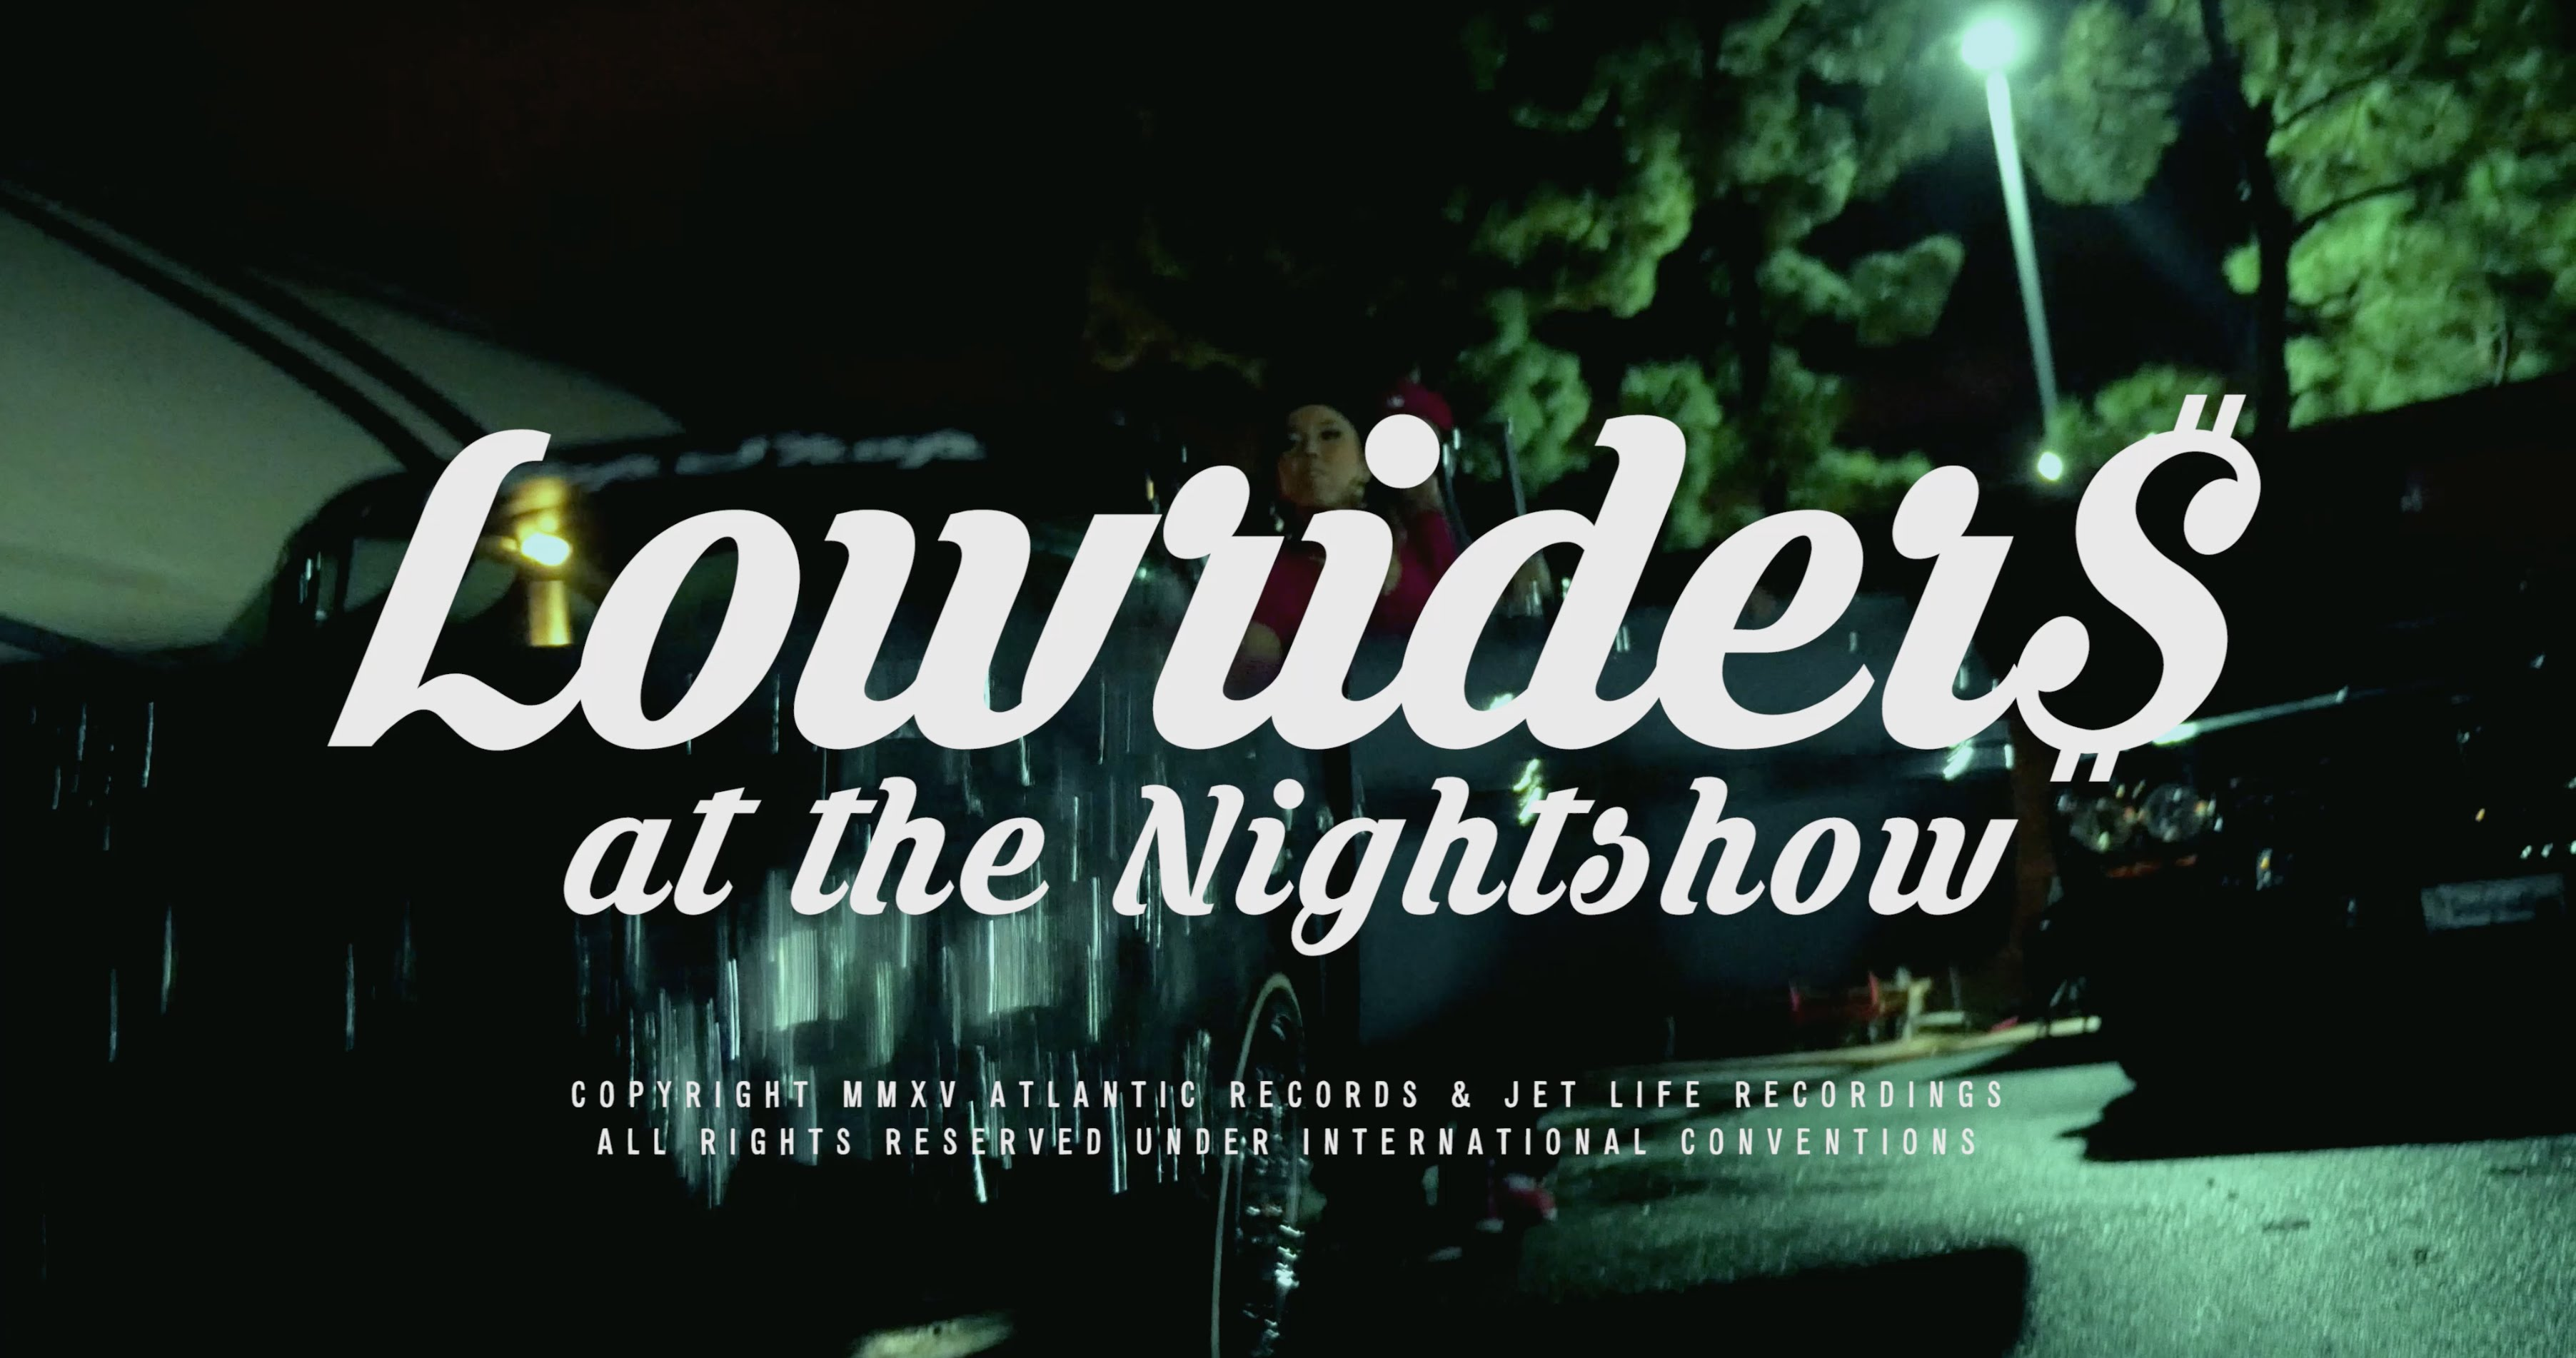 """Curren$y """"LOWRIDERS AT THE NIGHTSHOW"""""""